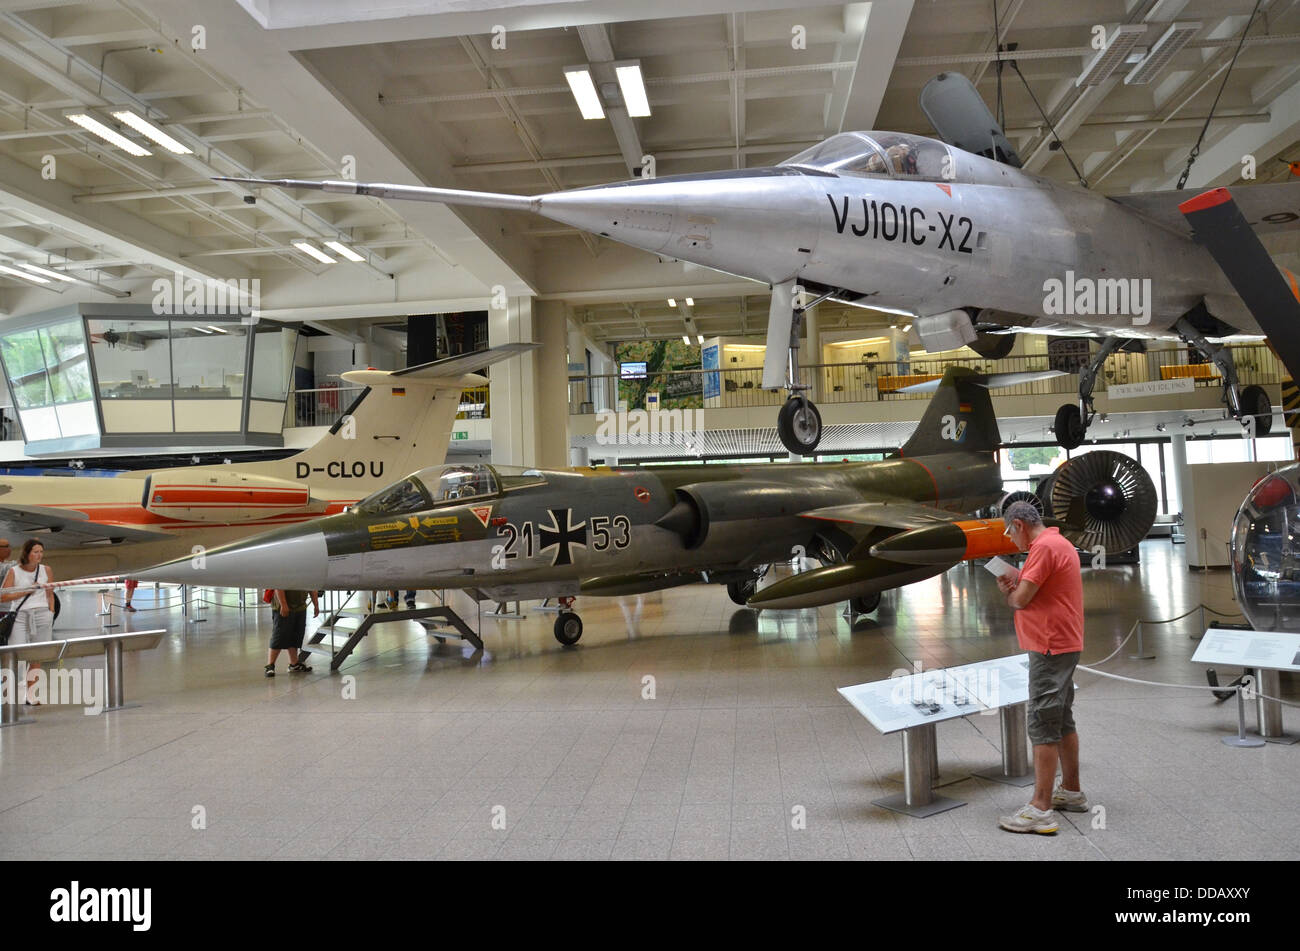 Germany, Munich Deutsches Museum Jets and Helicopters, new aeronautics hall aviation history - Stock Image